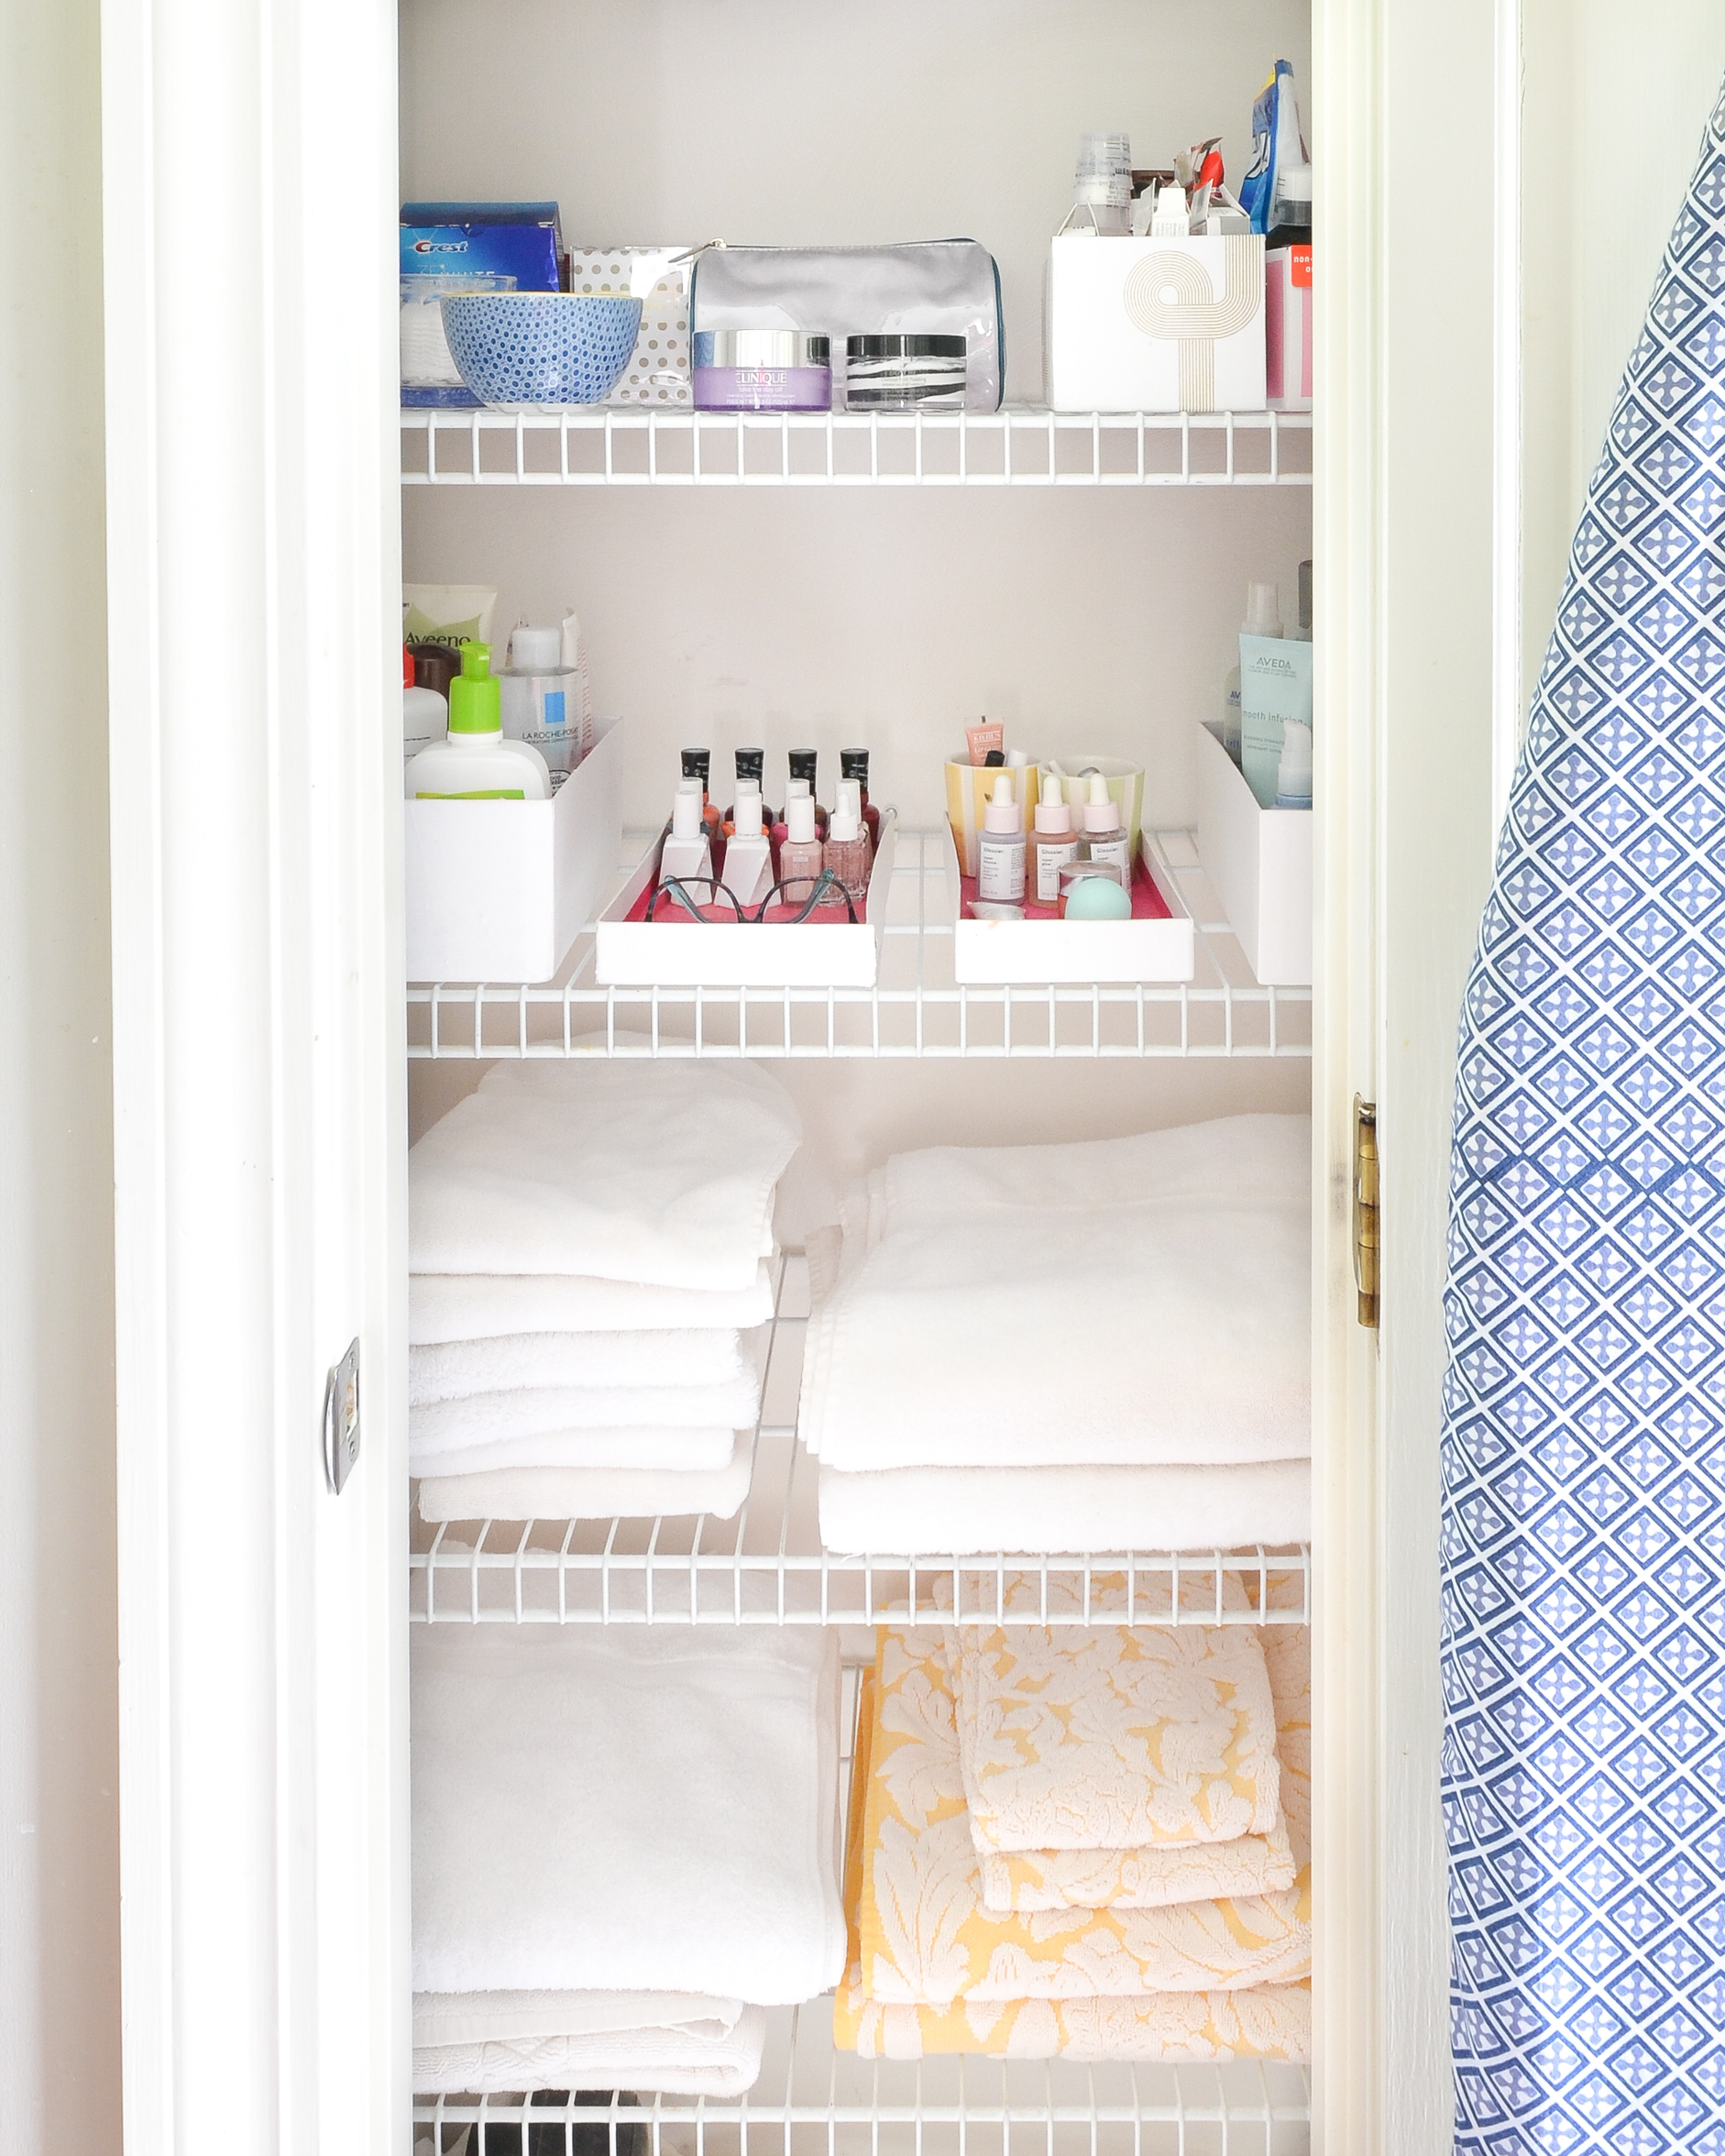 Easy tips for a clean bathroom the chronicles of home for Cleaning bathroom tips